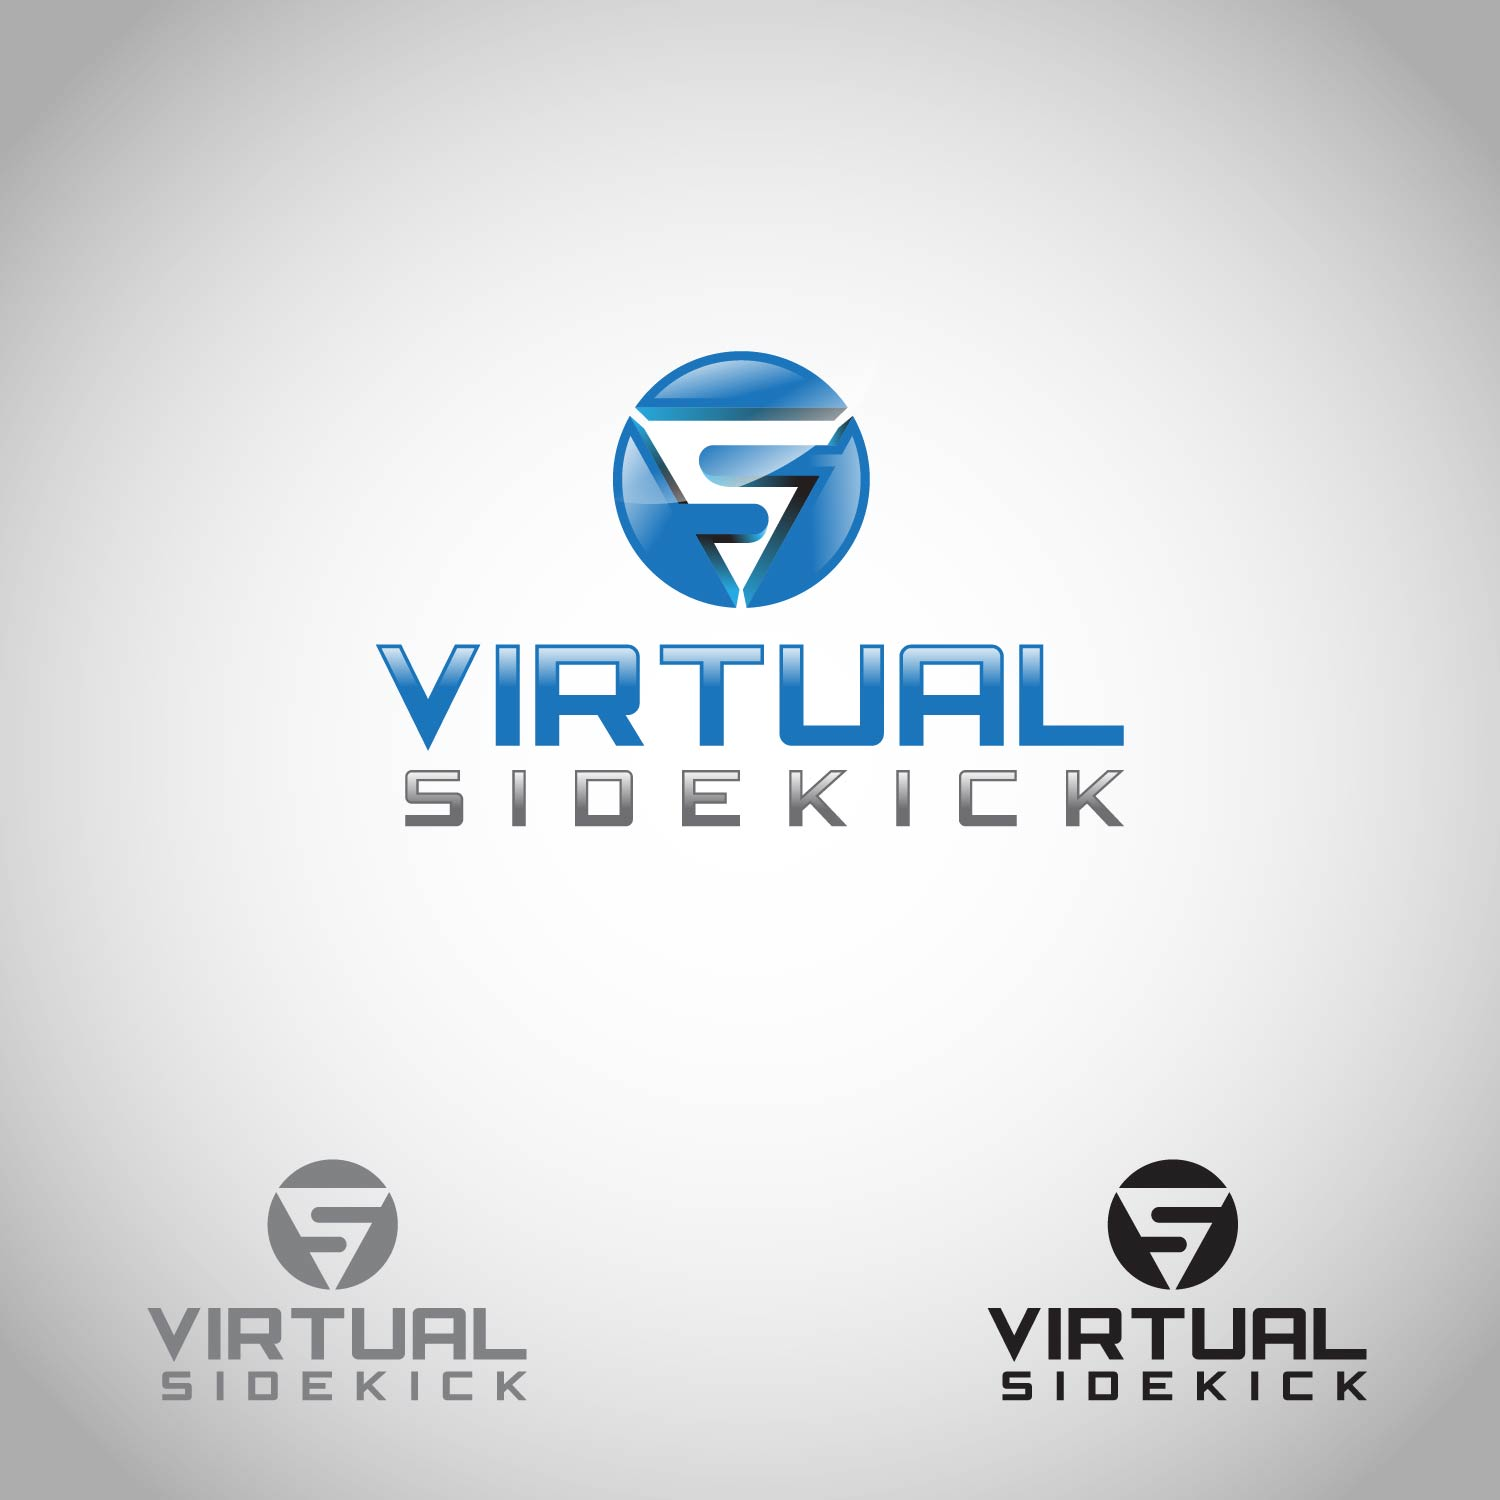 Logo Design by lagalag - Entry No. 35 in the Logo Design Contest Fun Logo Design for Virtual Sidekick.